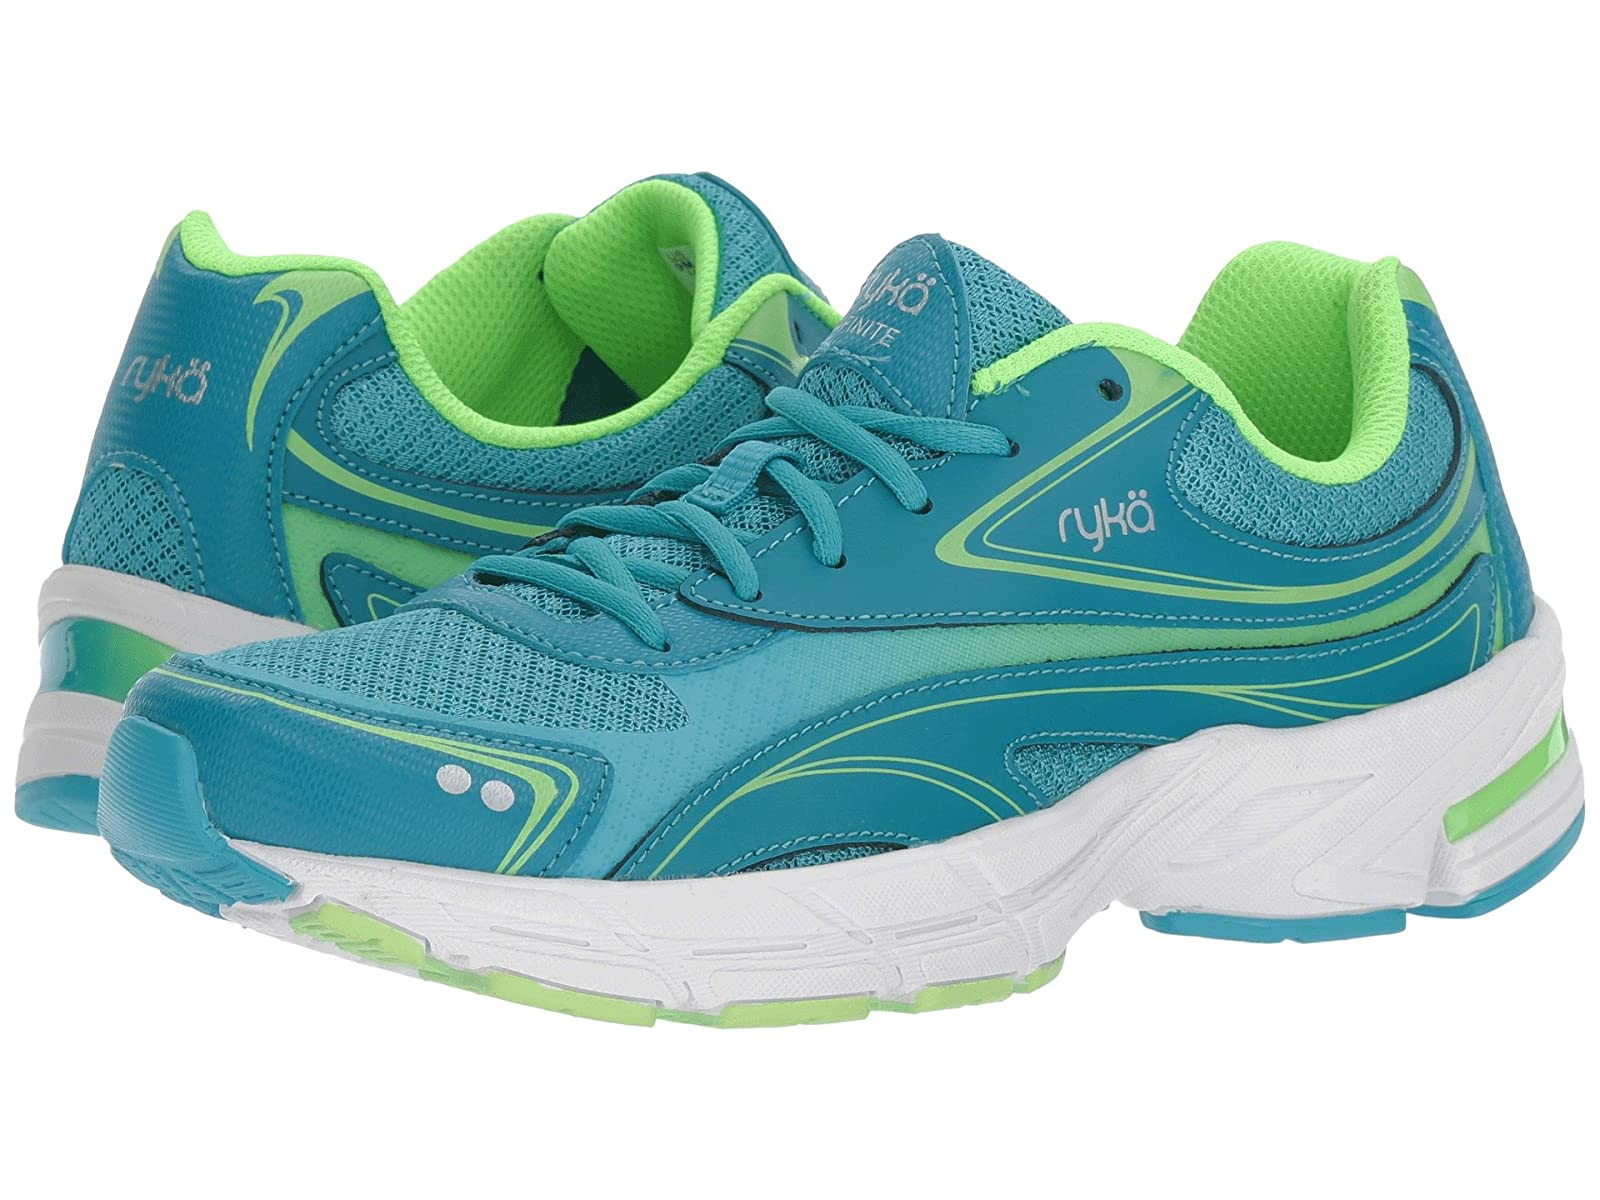 Ryka Infinite SMWCheap and distinctive eye-catching shoes